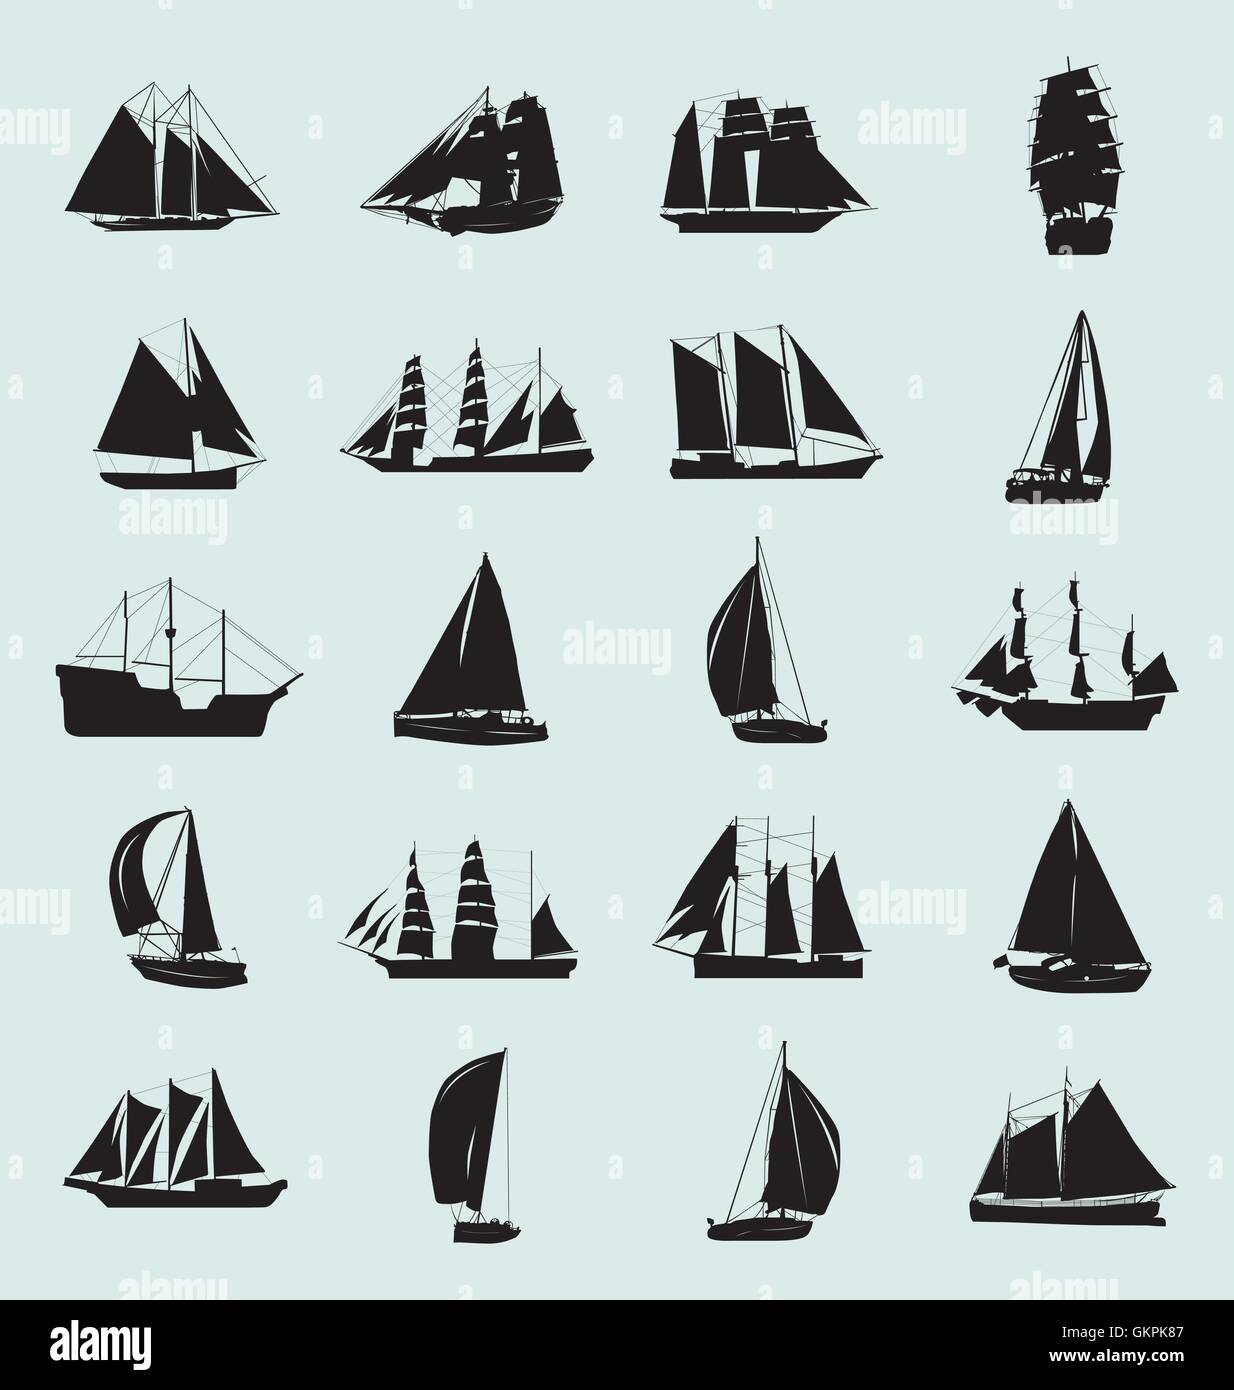 Boat Silhouette Set - Stock Image